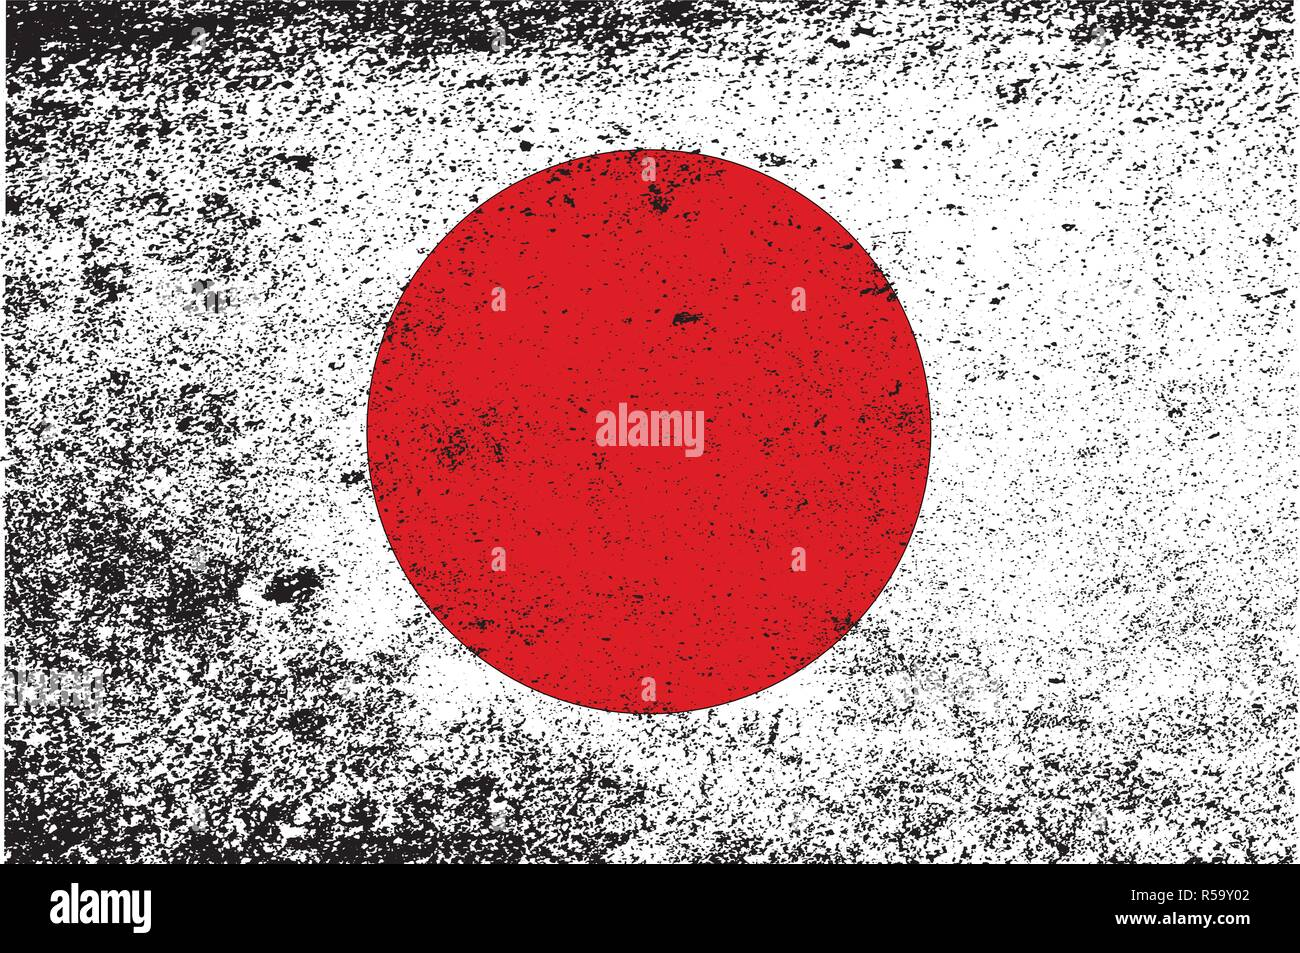 A grunge version of the Japanese rising sun flag - Stock Image